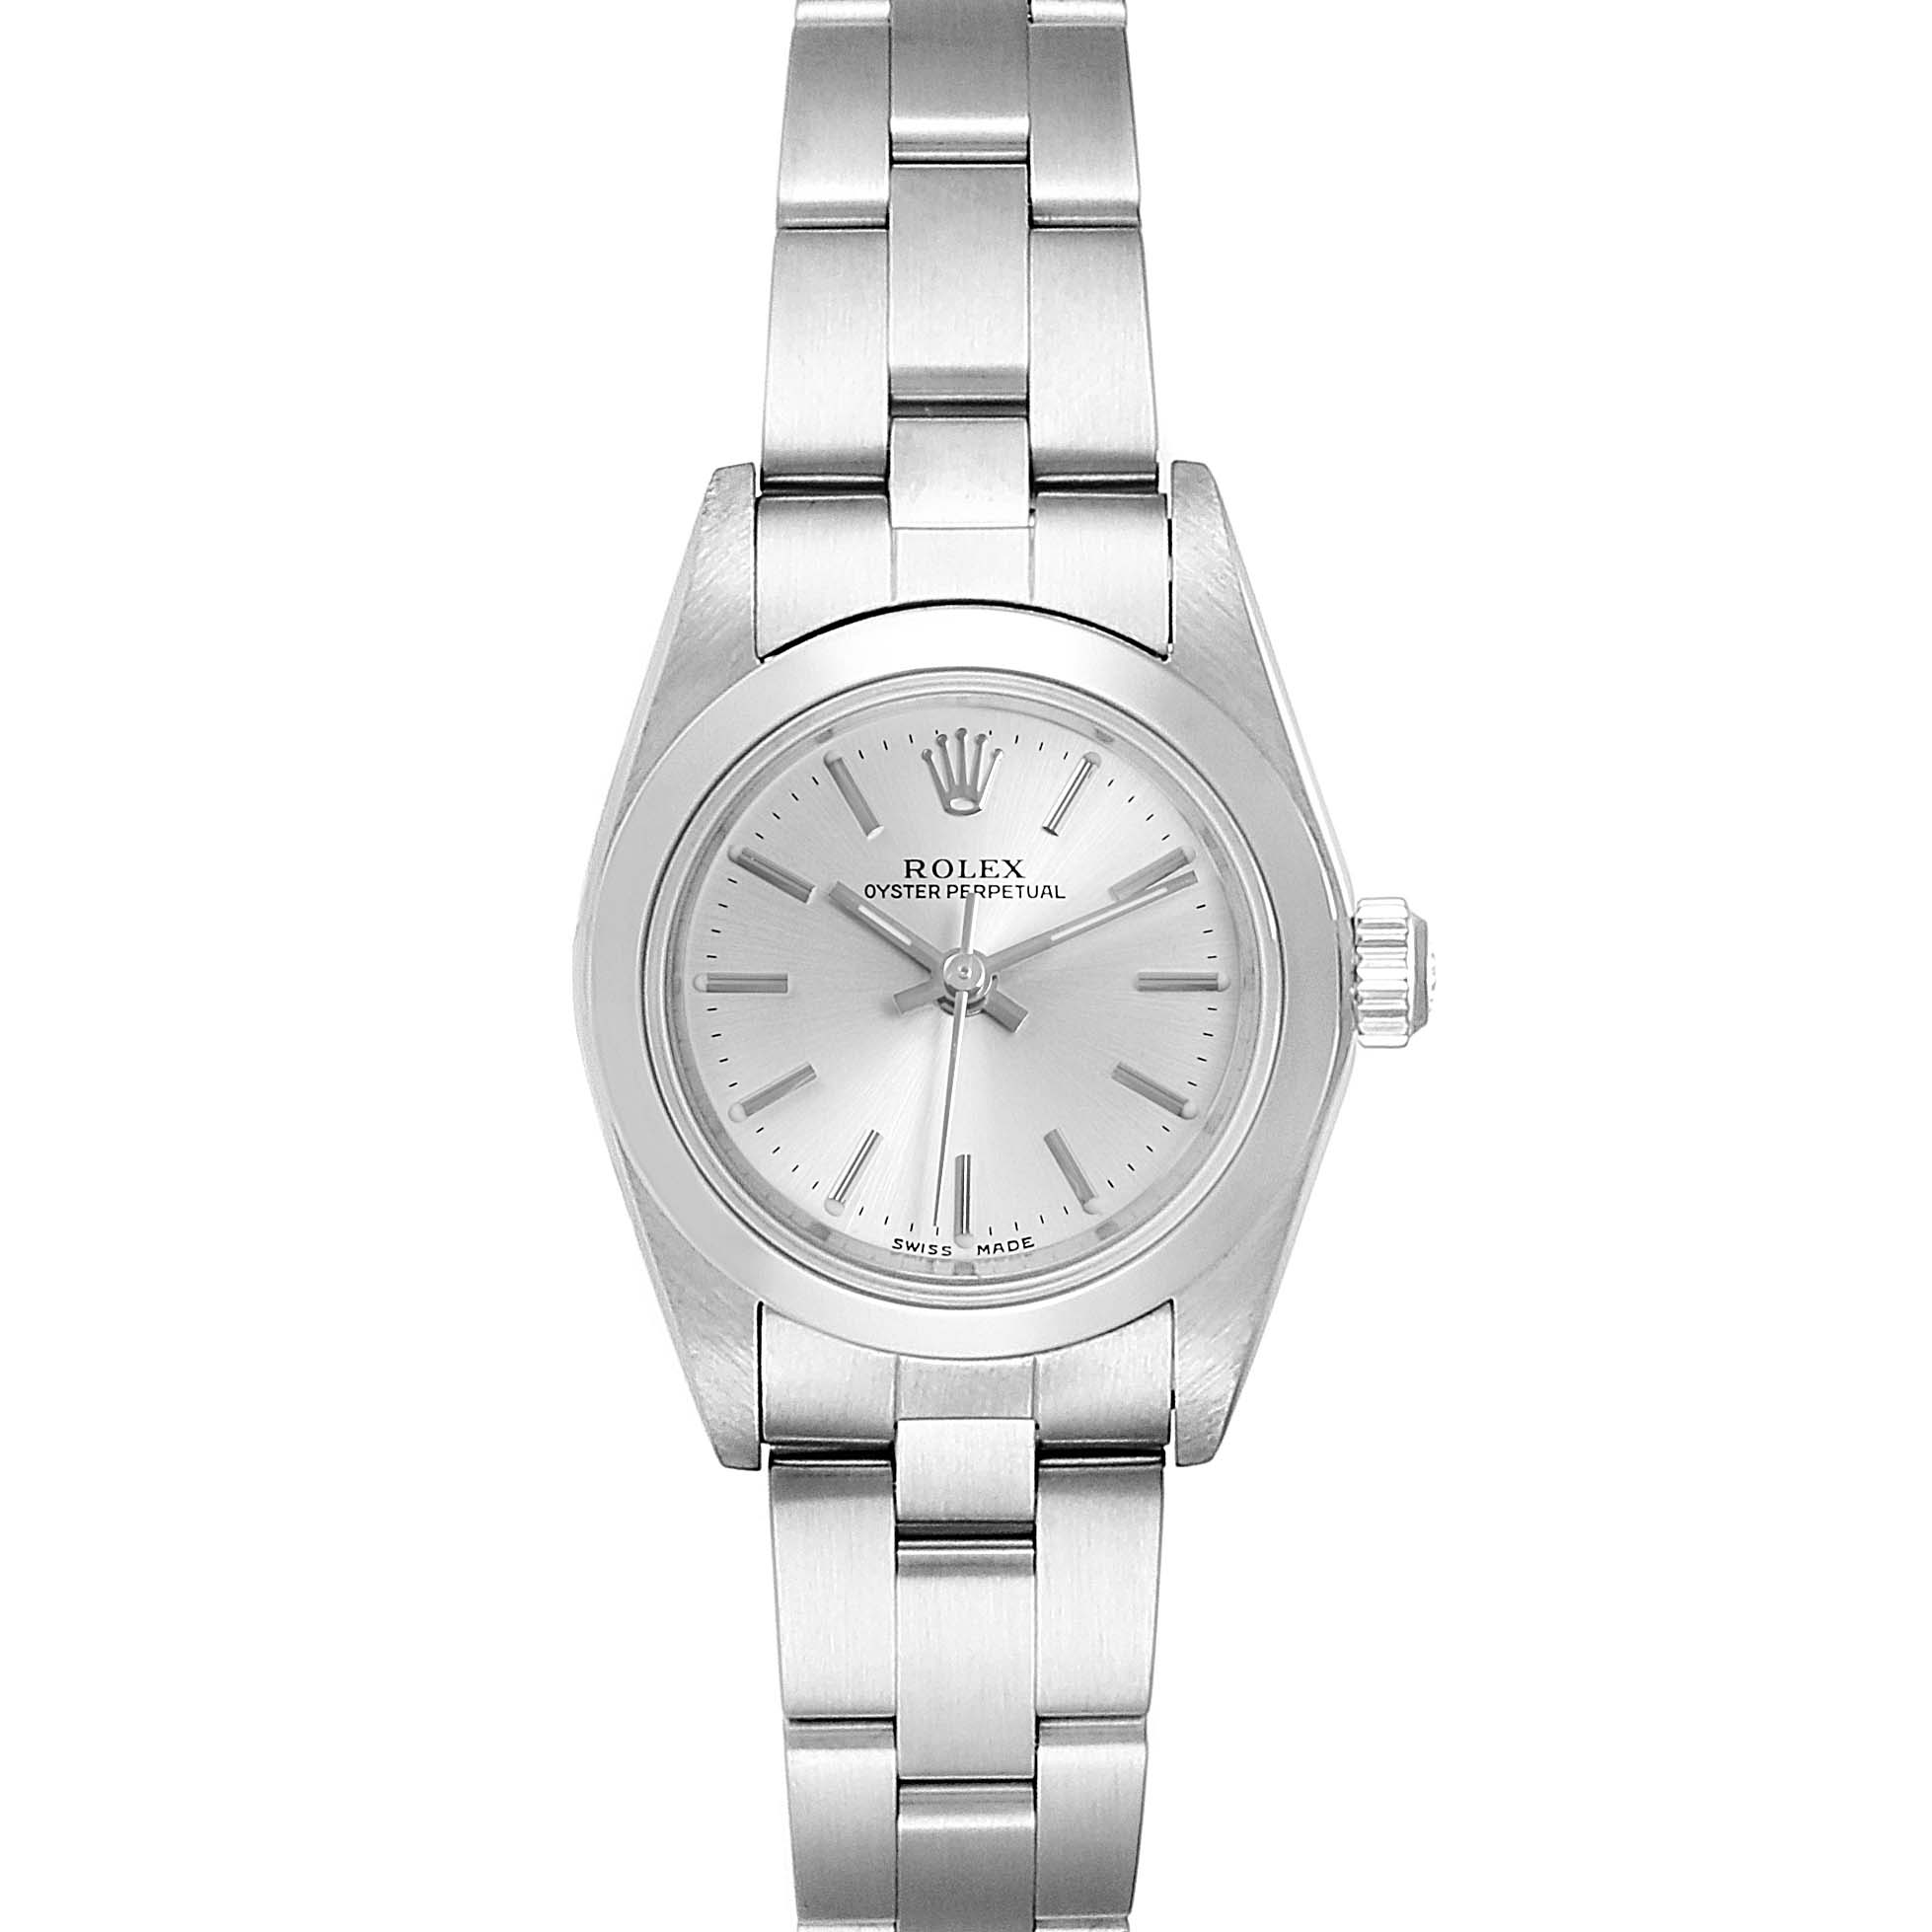 Rolex Oyster Perpetual Nondate Silver Dial Ladies Watch 76080 Box